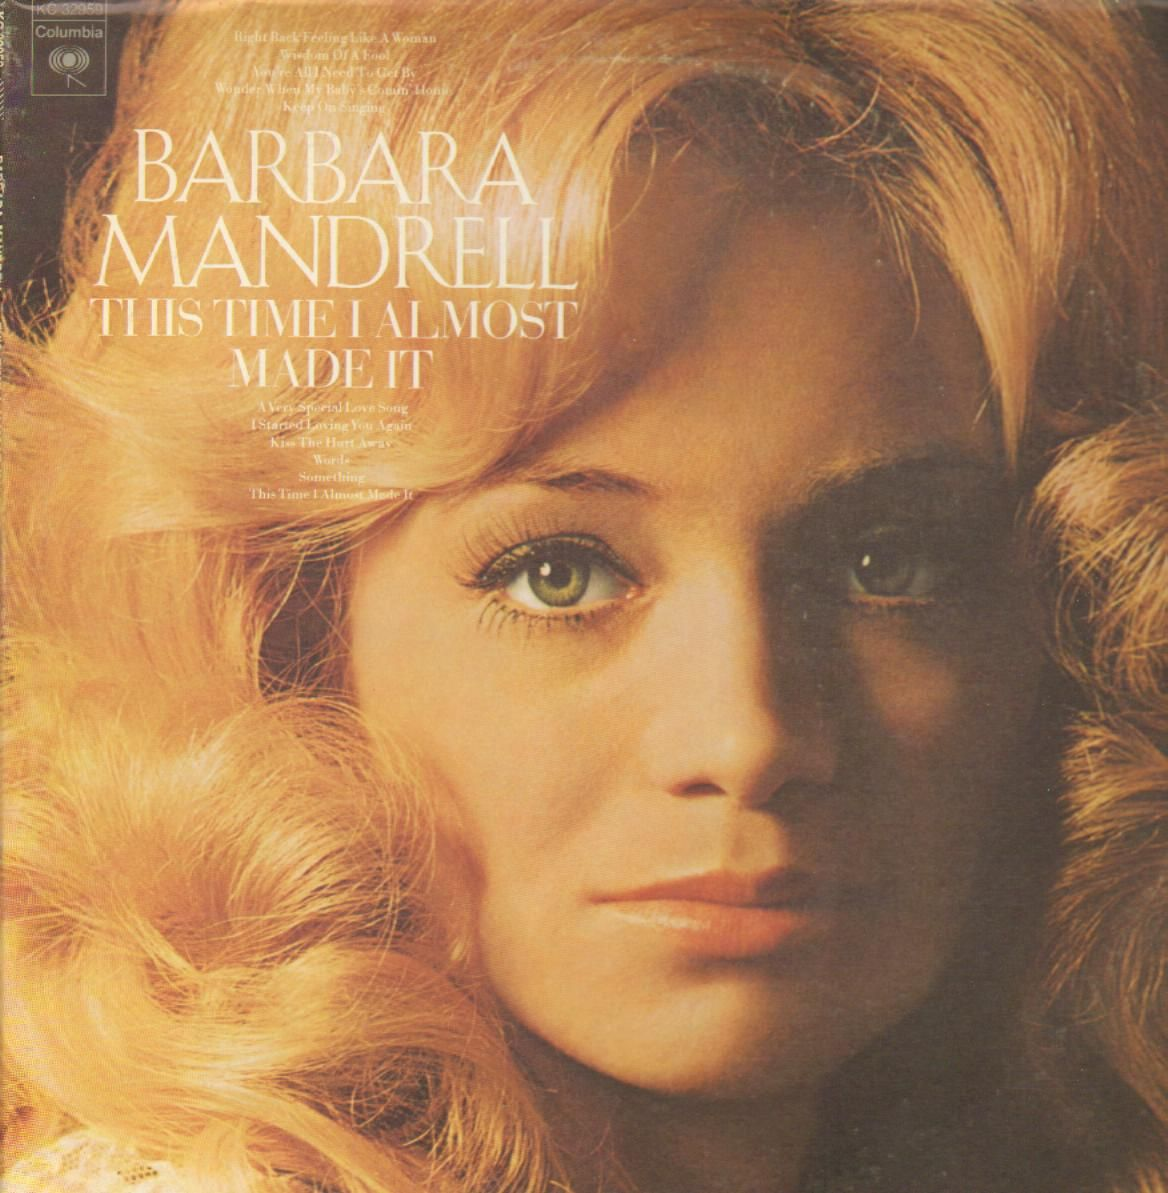 2016 Will See Previously Unreleased Barbara Mandrell Music.